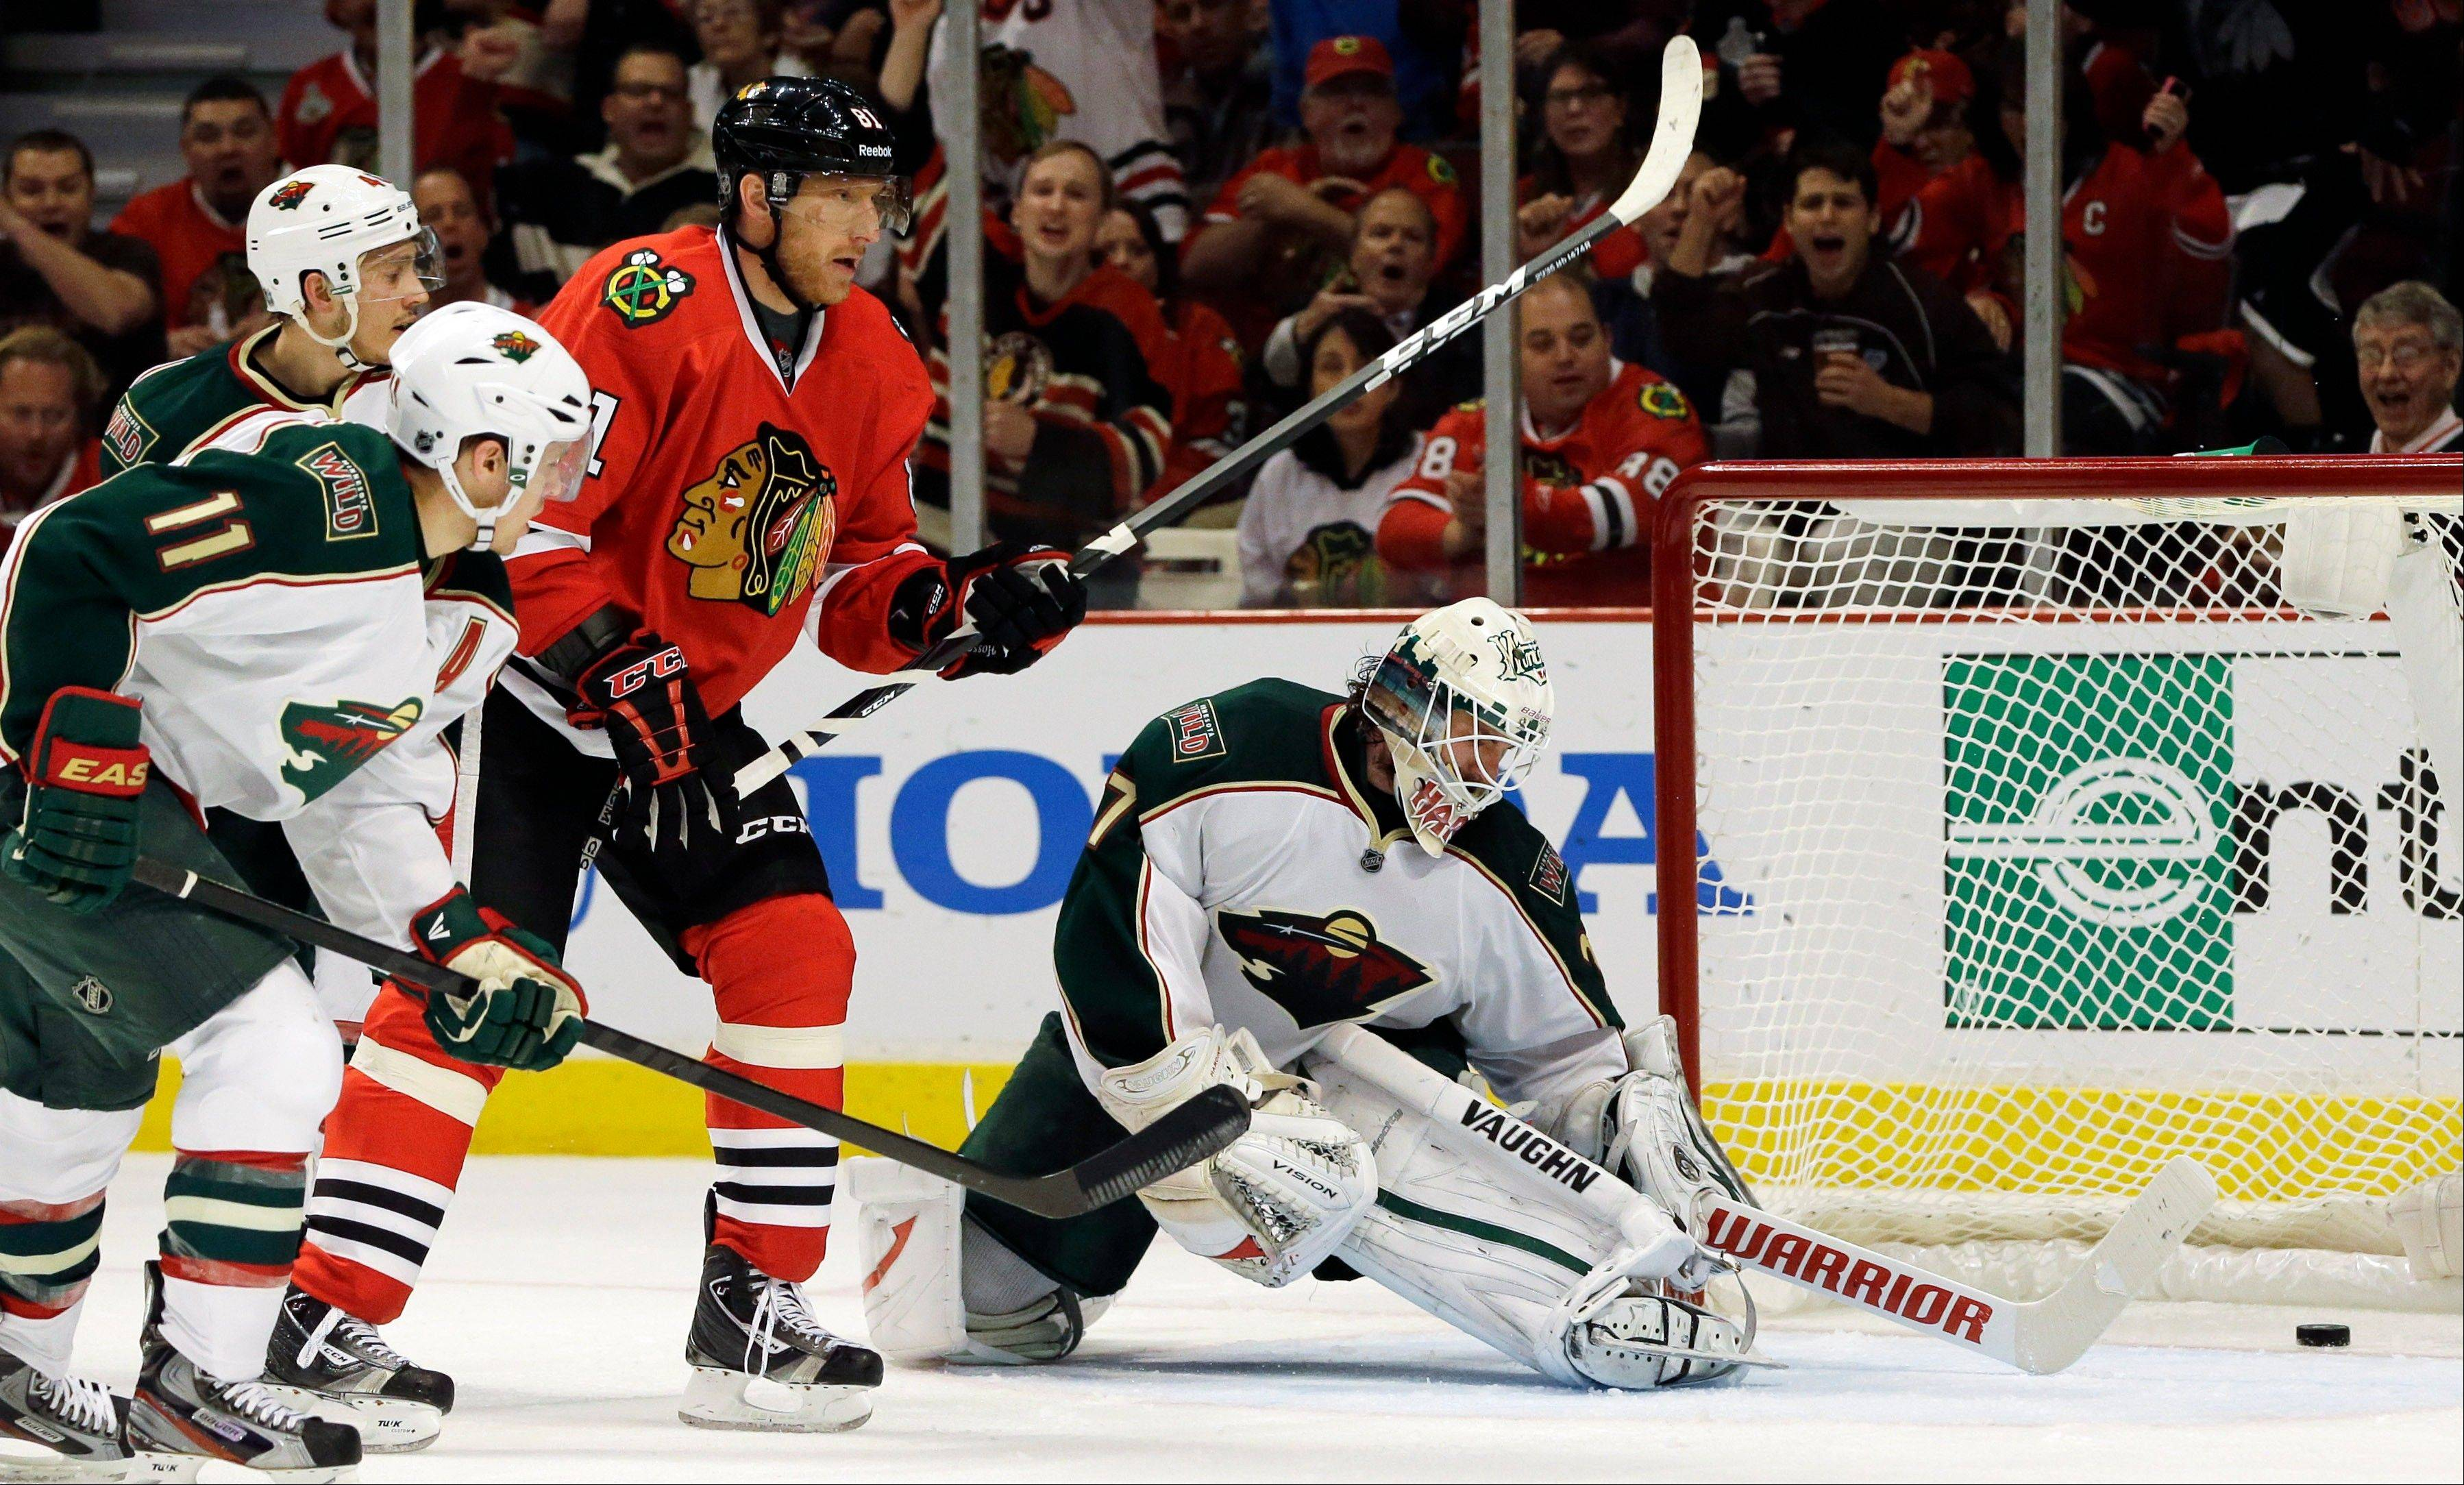 Minnesota Wild goalie Josh Harding, right, cannot save a goal by Chicago Blackhawks' Marian Hossa (81) as Wild's Zach Parise (11) and Jared Spurgeon (46) look on during the second period of Game 5 of an NHL hockey Stanley Cup first-round playoff series in Chicago, Thursday, May 9, 2013.